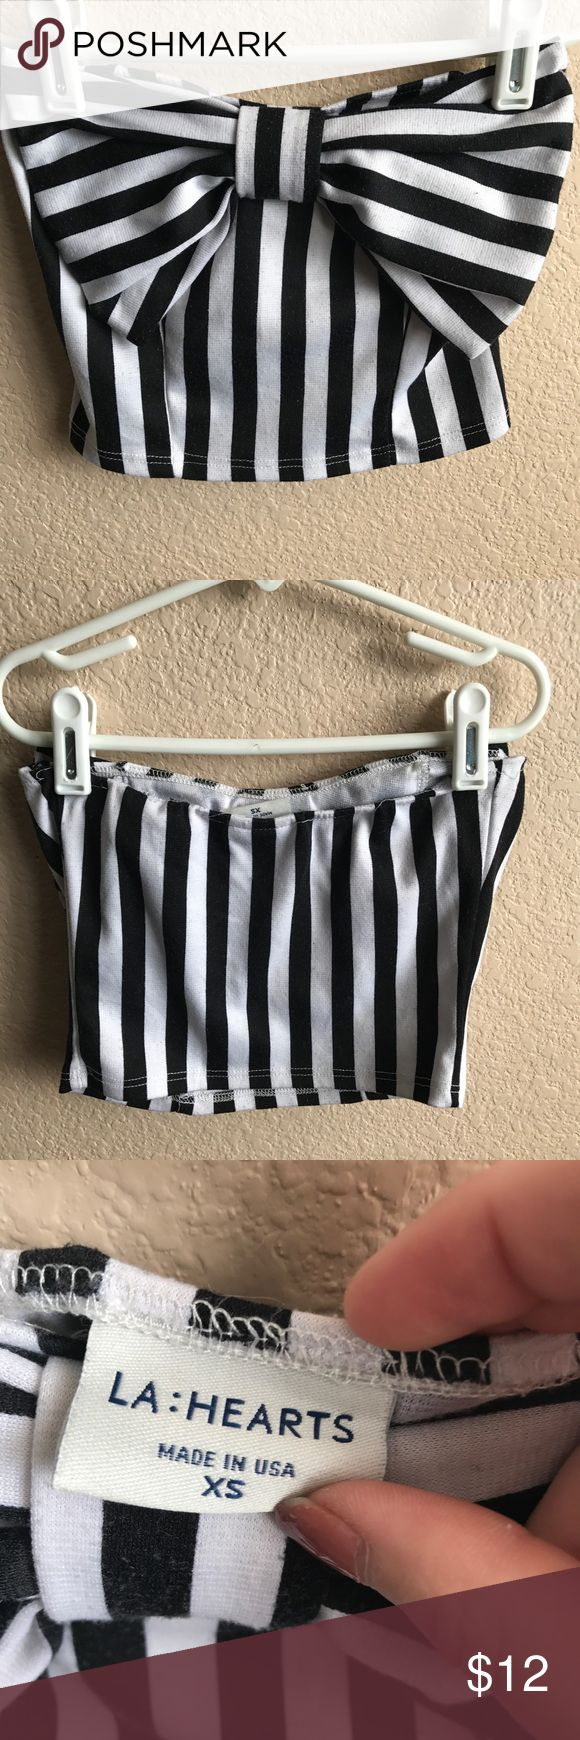 NWOT PacSun Stripe Bow Crop Top Size XS bow striped crop top from PacSun *Will be re-washed to remove wrinkles* PacSun Tops Crop Tops